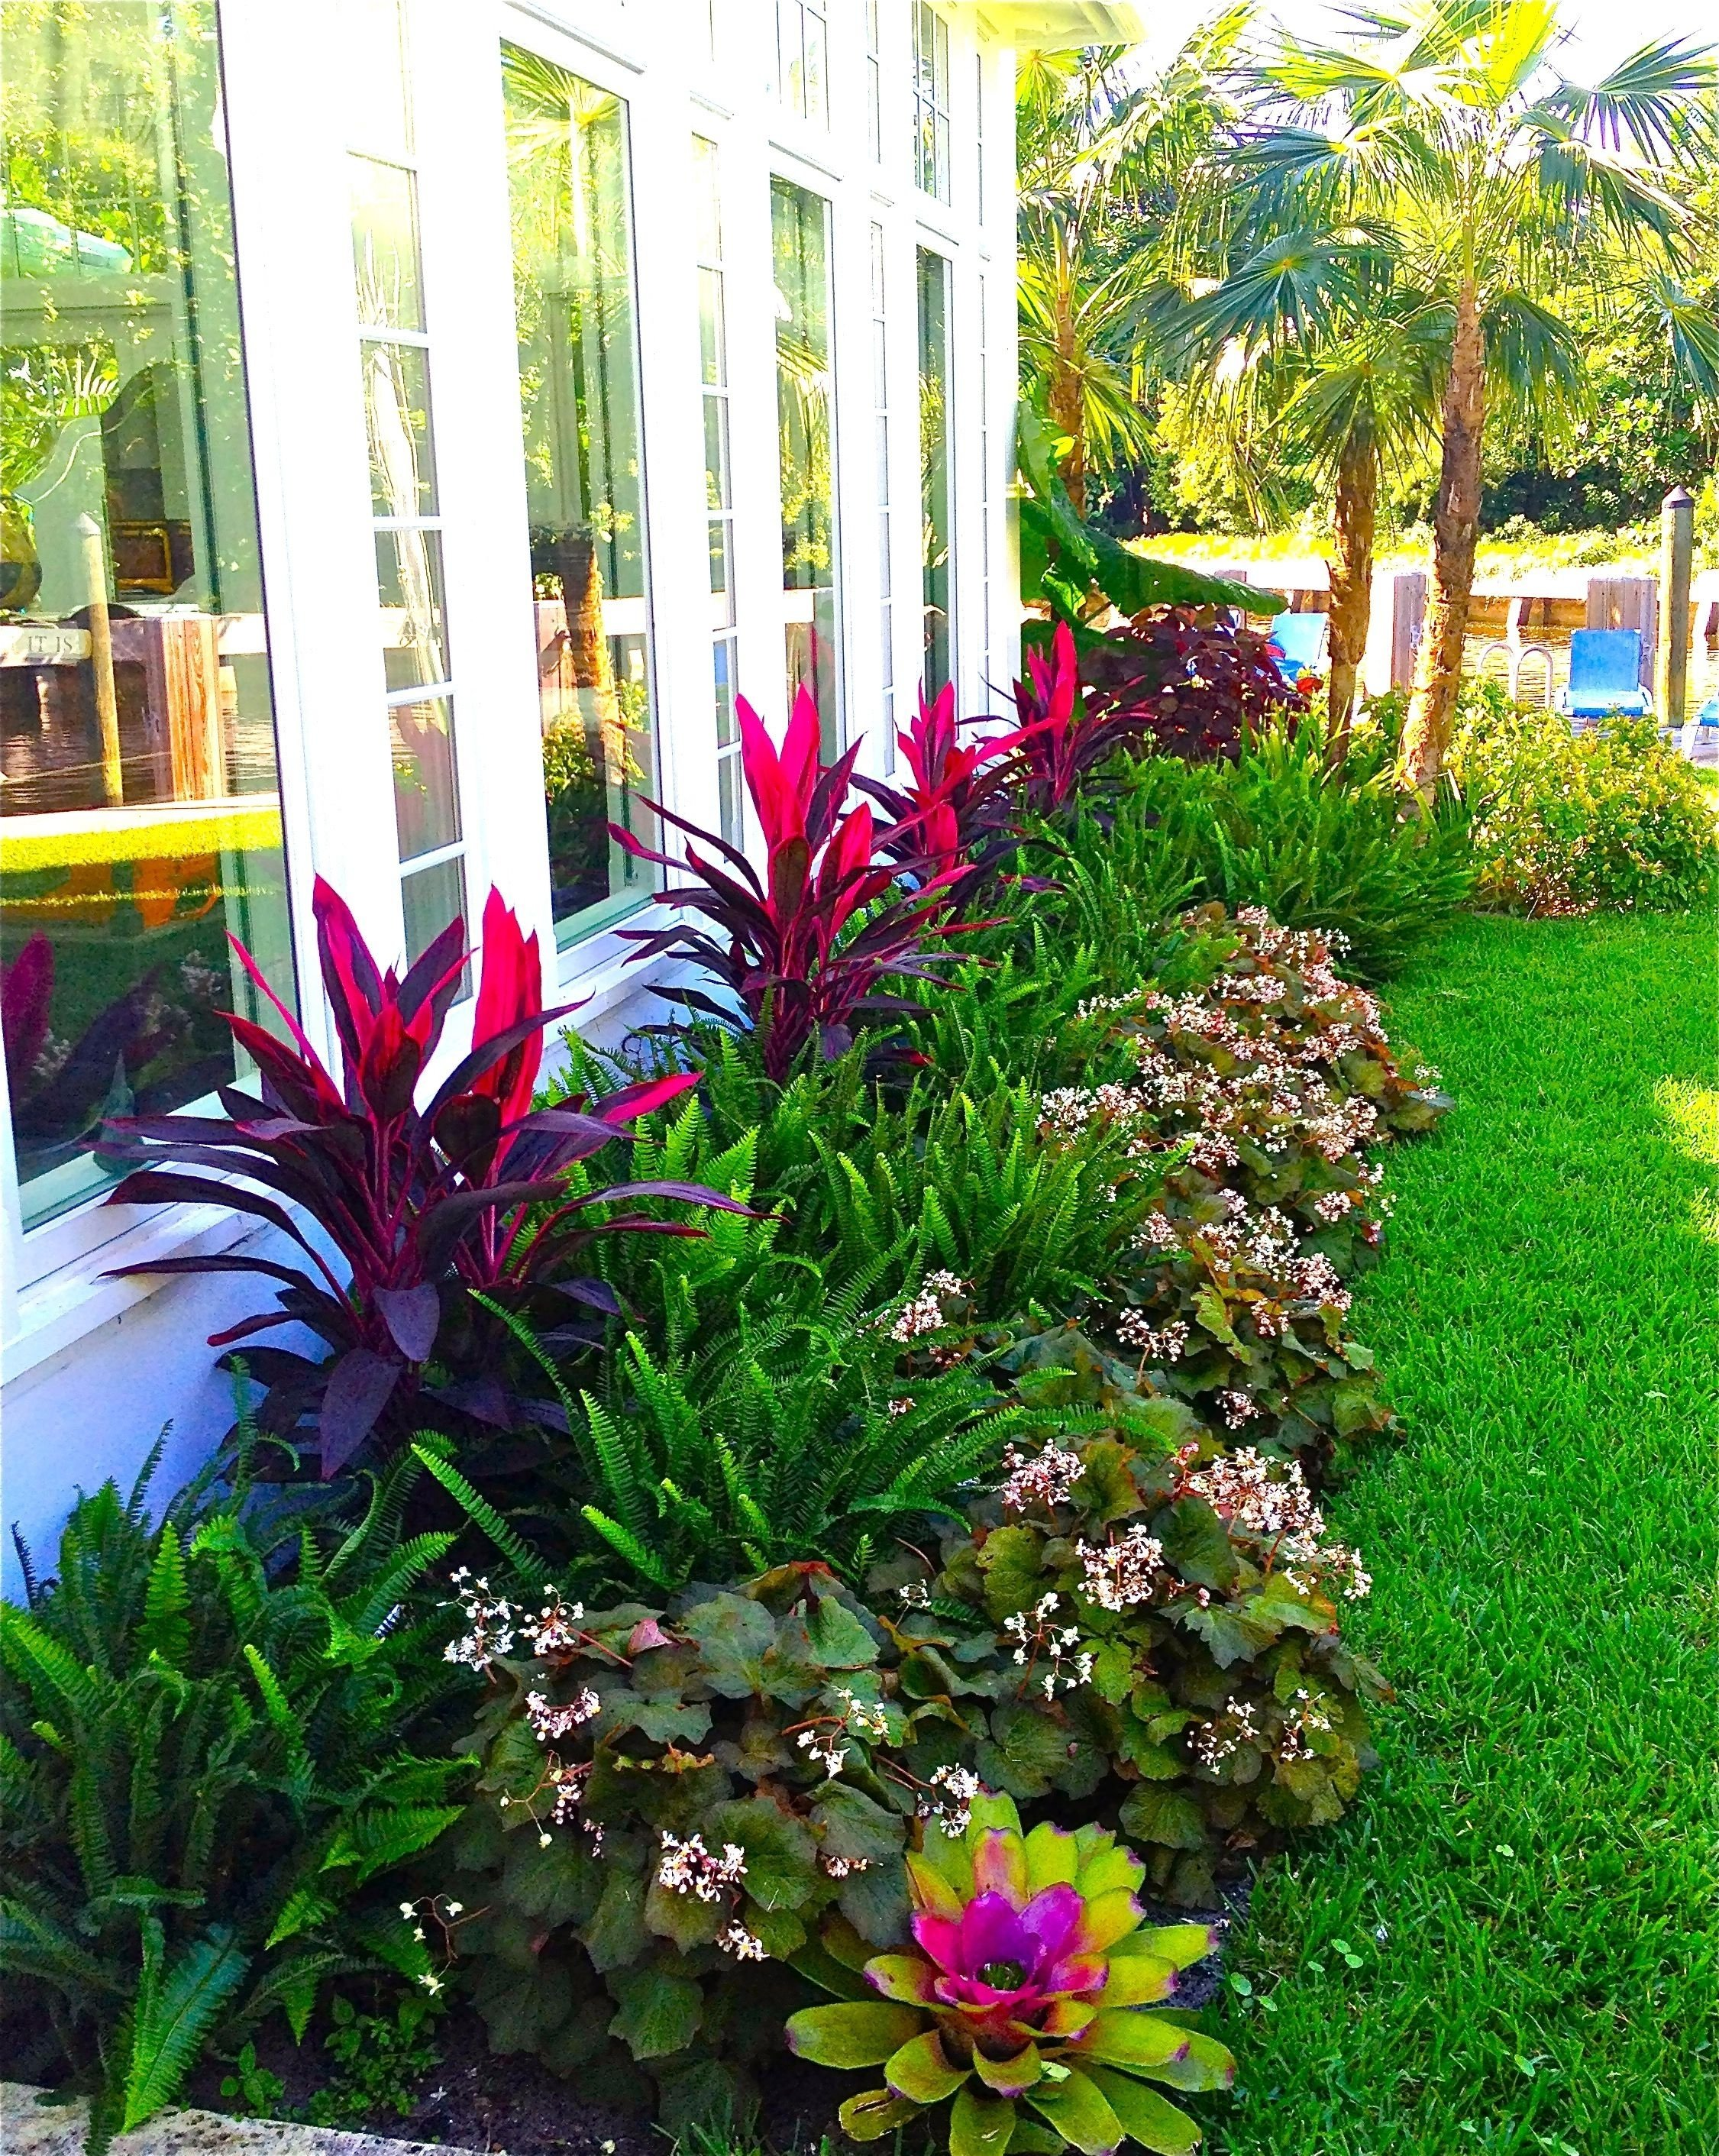 10 Attractive Tropical Landscaping Ideas For Front Yard stunning way to add tropical colors to your outdoor landscaping 2020